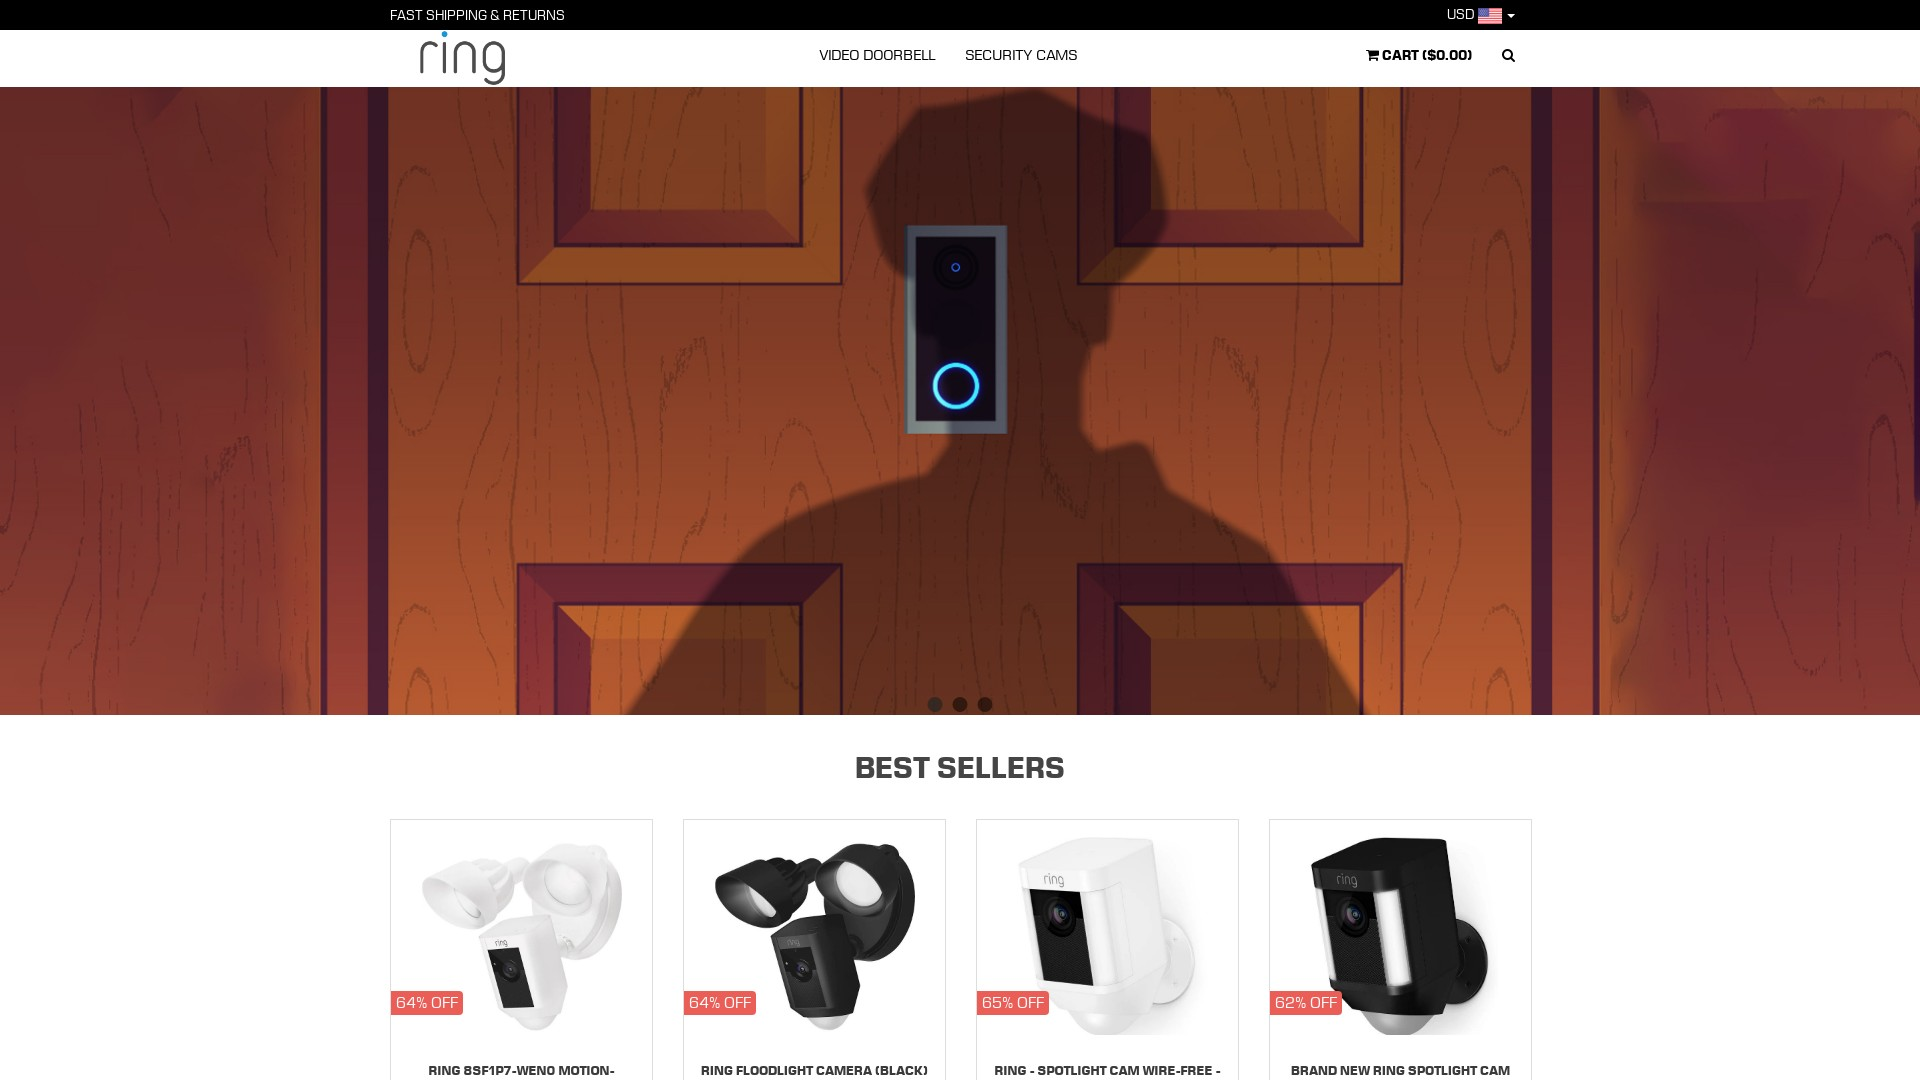 Is Buildingrain a Scam? See the Review of the Online Store